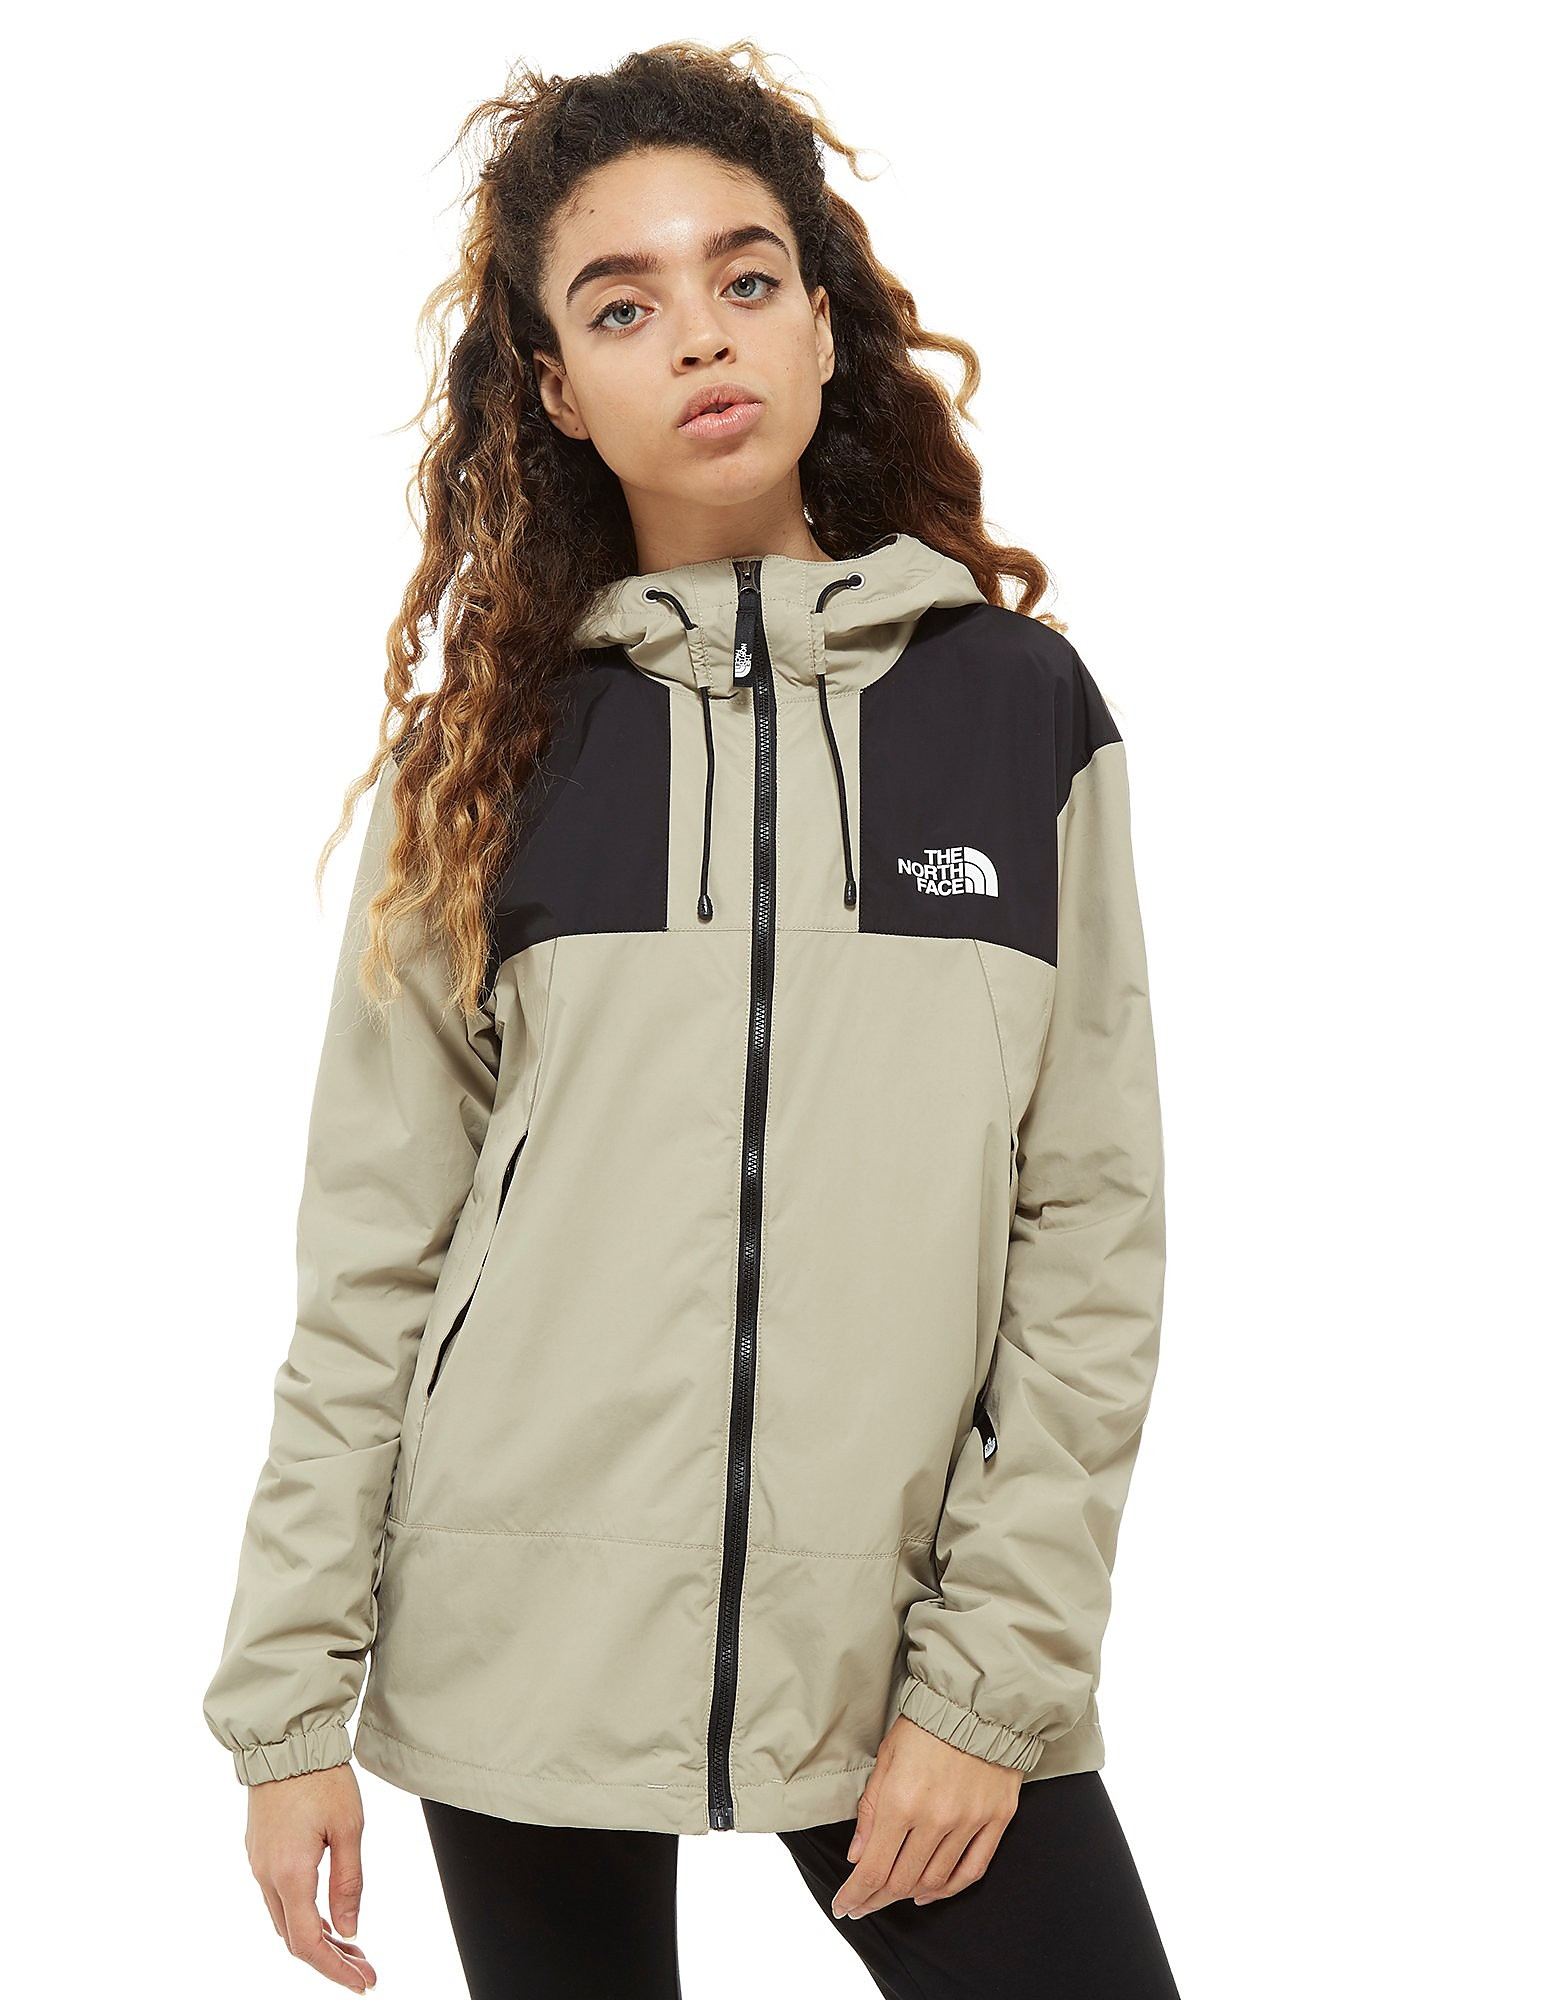 The North Face chaqueta Panel Wind